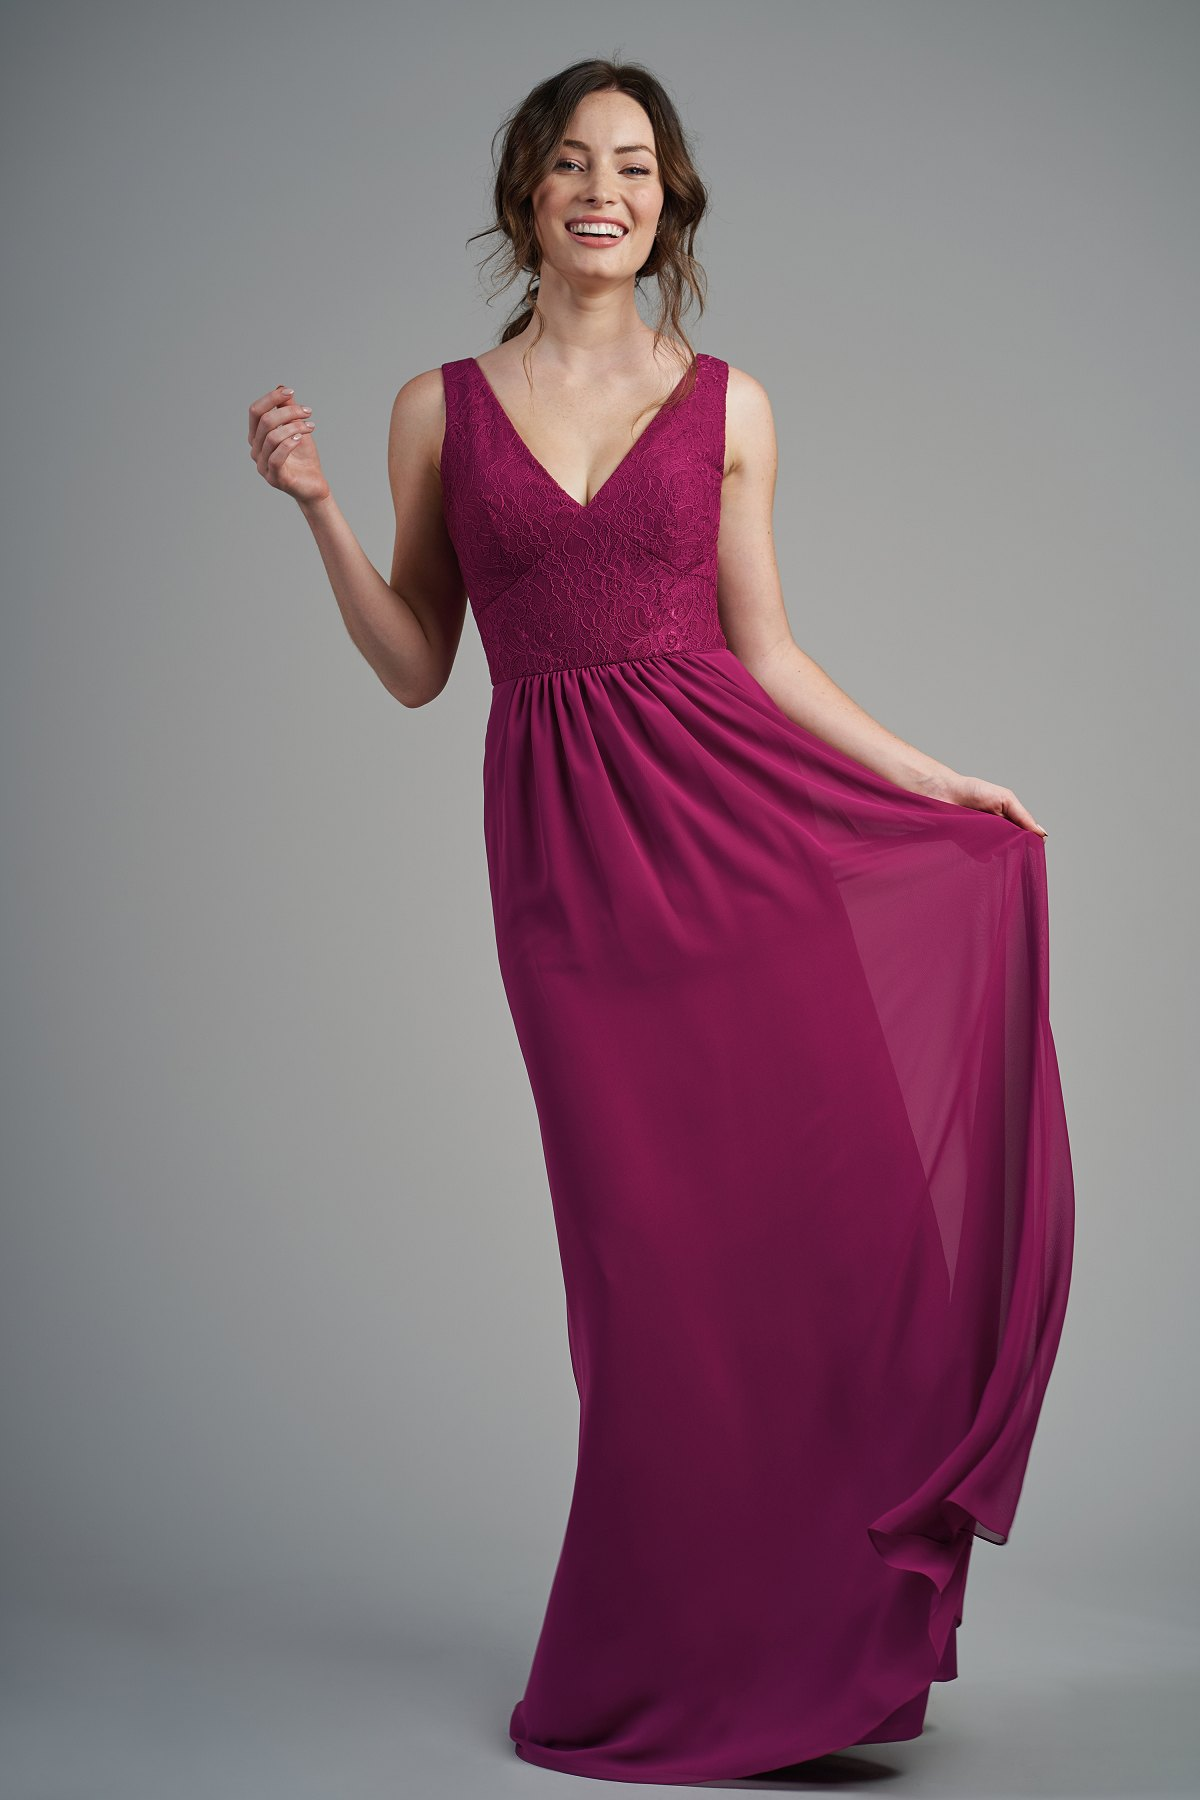 B213011 -  Simple lace and poly chiffon floor length bridesmaid dress with a flattering V-neckline and V back. Beautiful detailed gathers on the skirt to complete the look.    Available in 22 colors